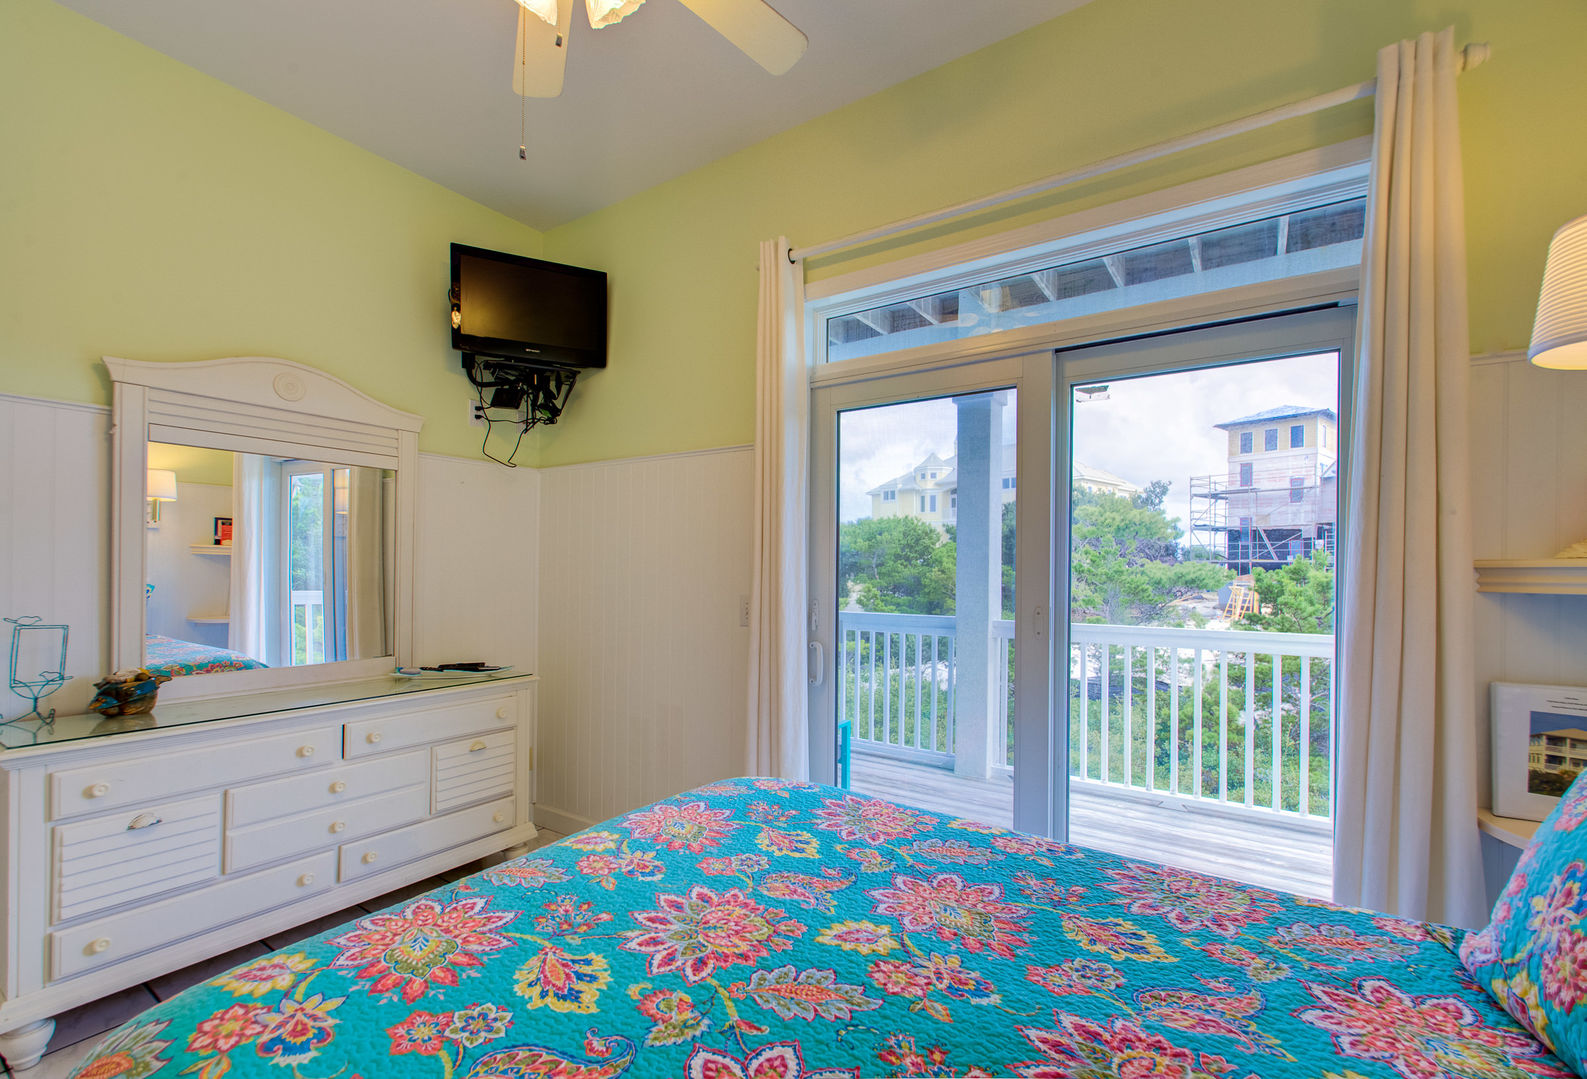 Enjoy an LCD TV and Balcony Access From Bedroom.